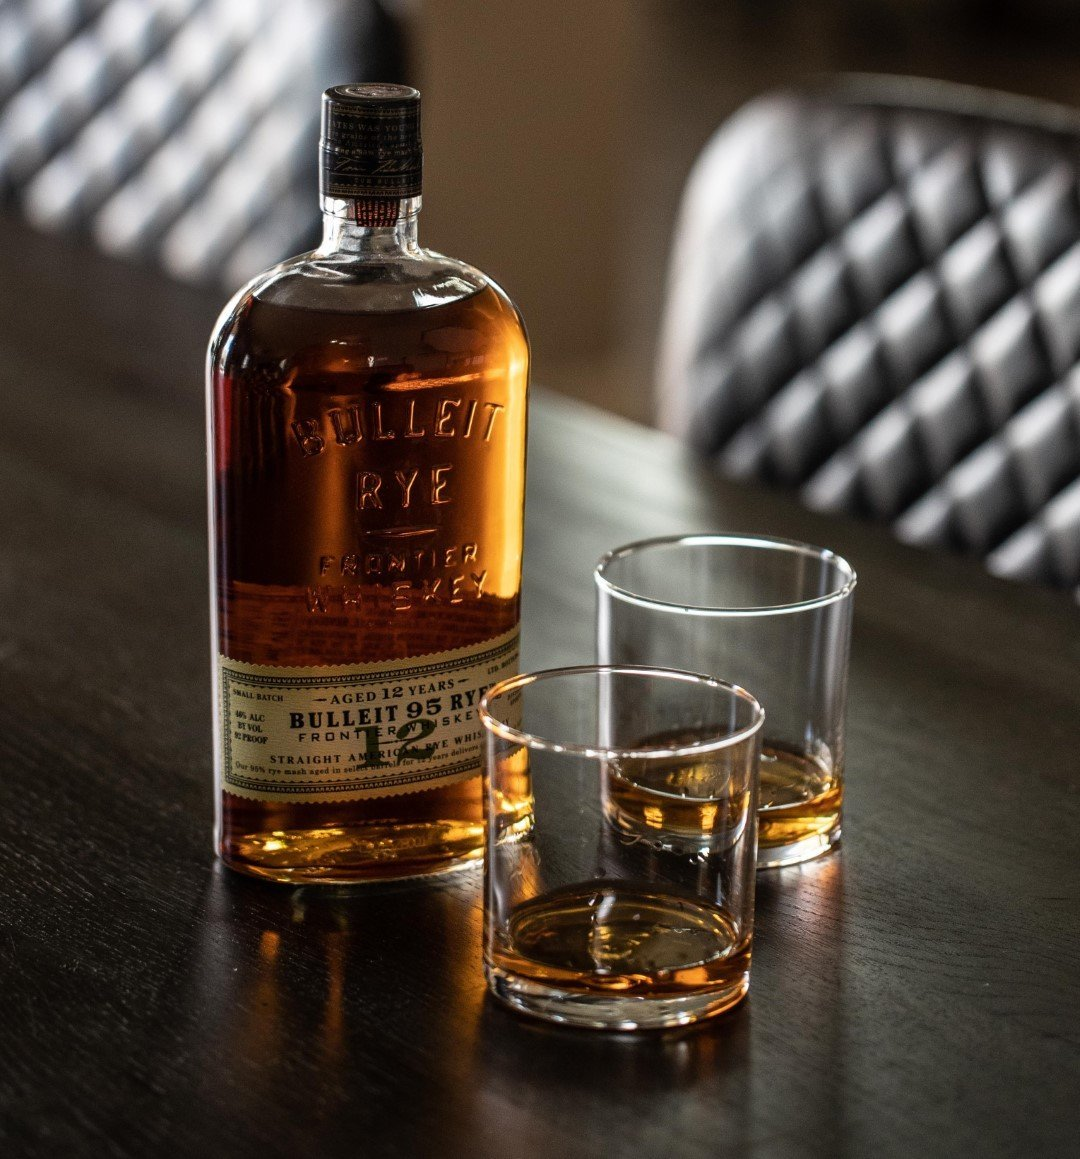 Bulleit Rye Whiskey 12 Years Old